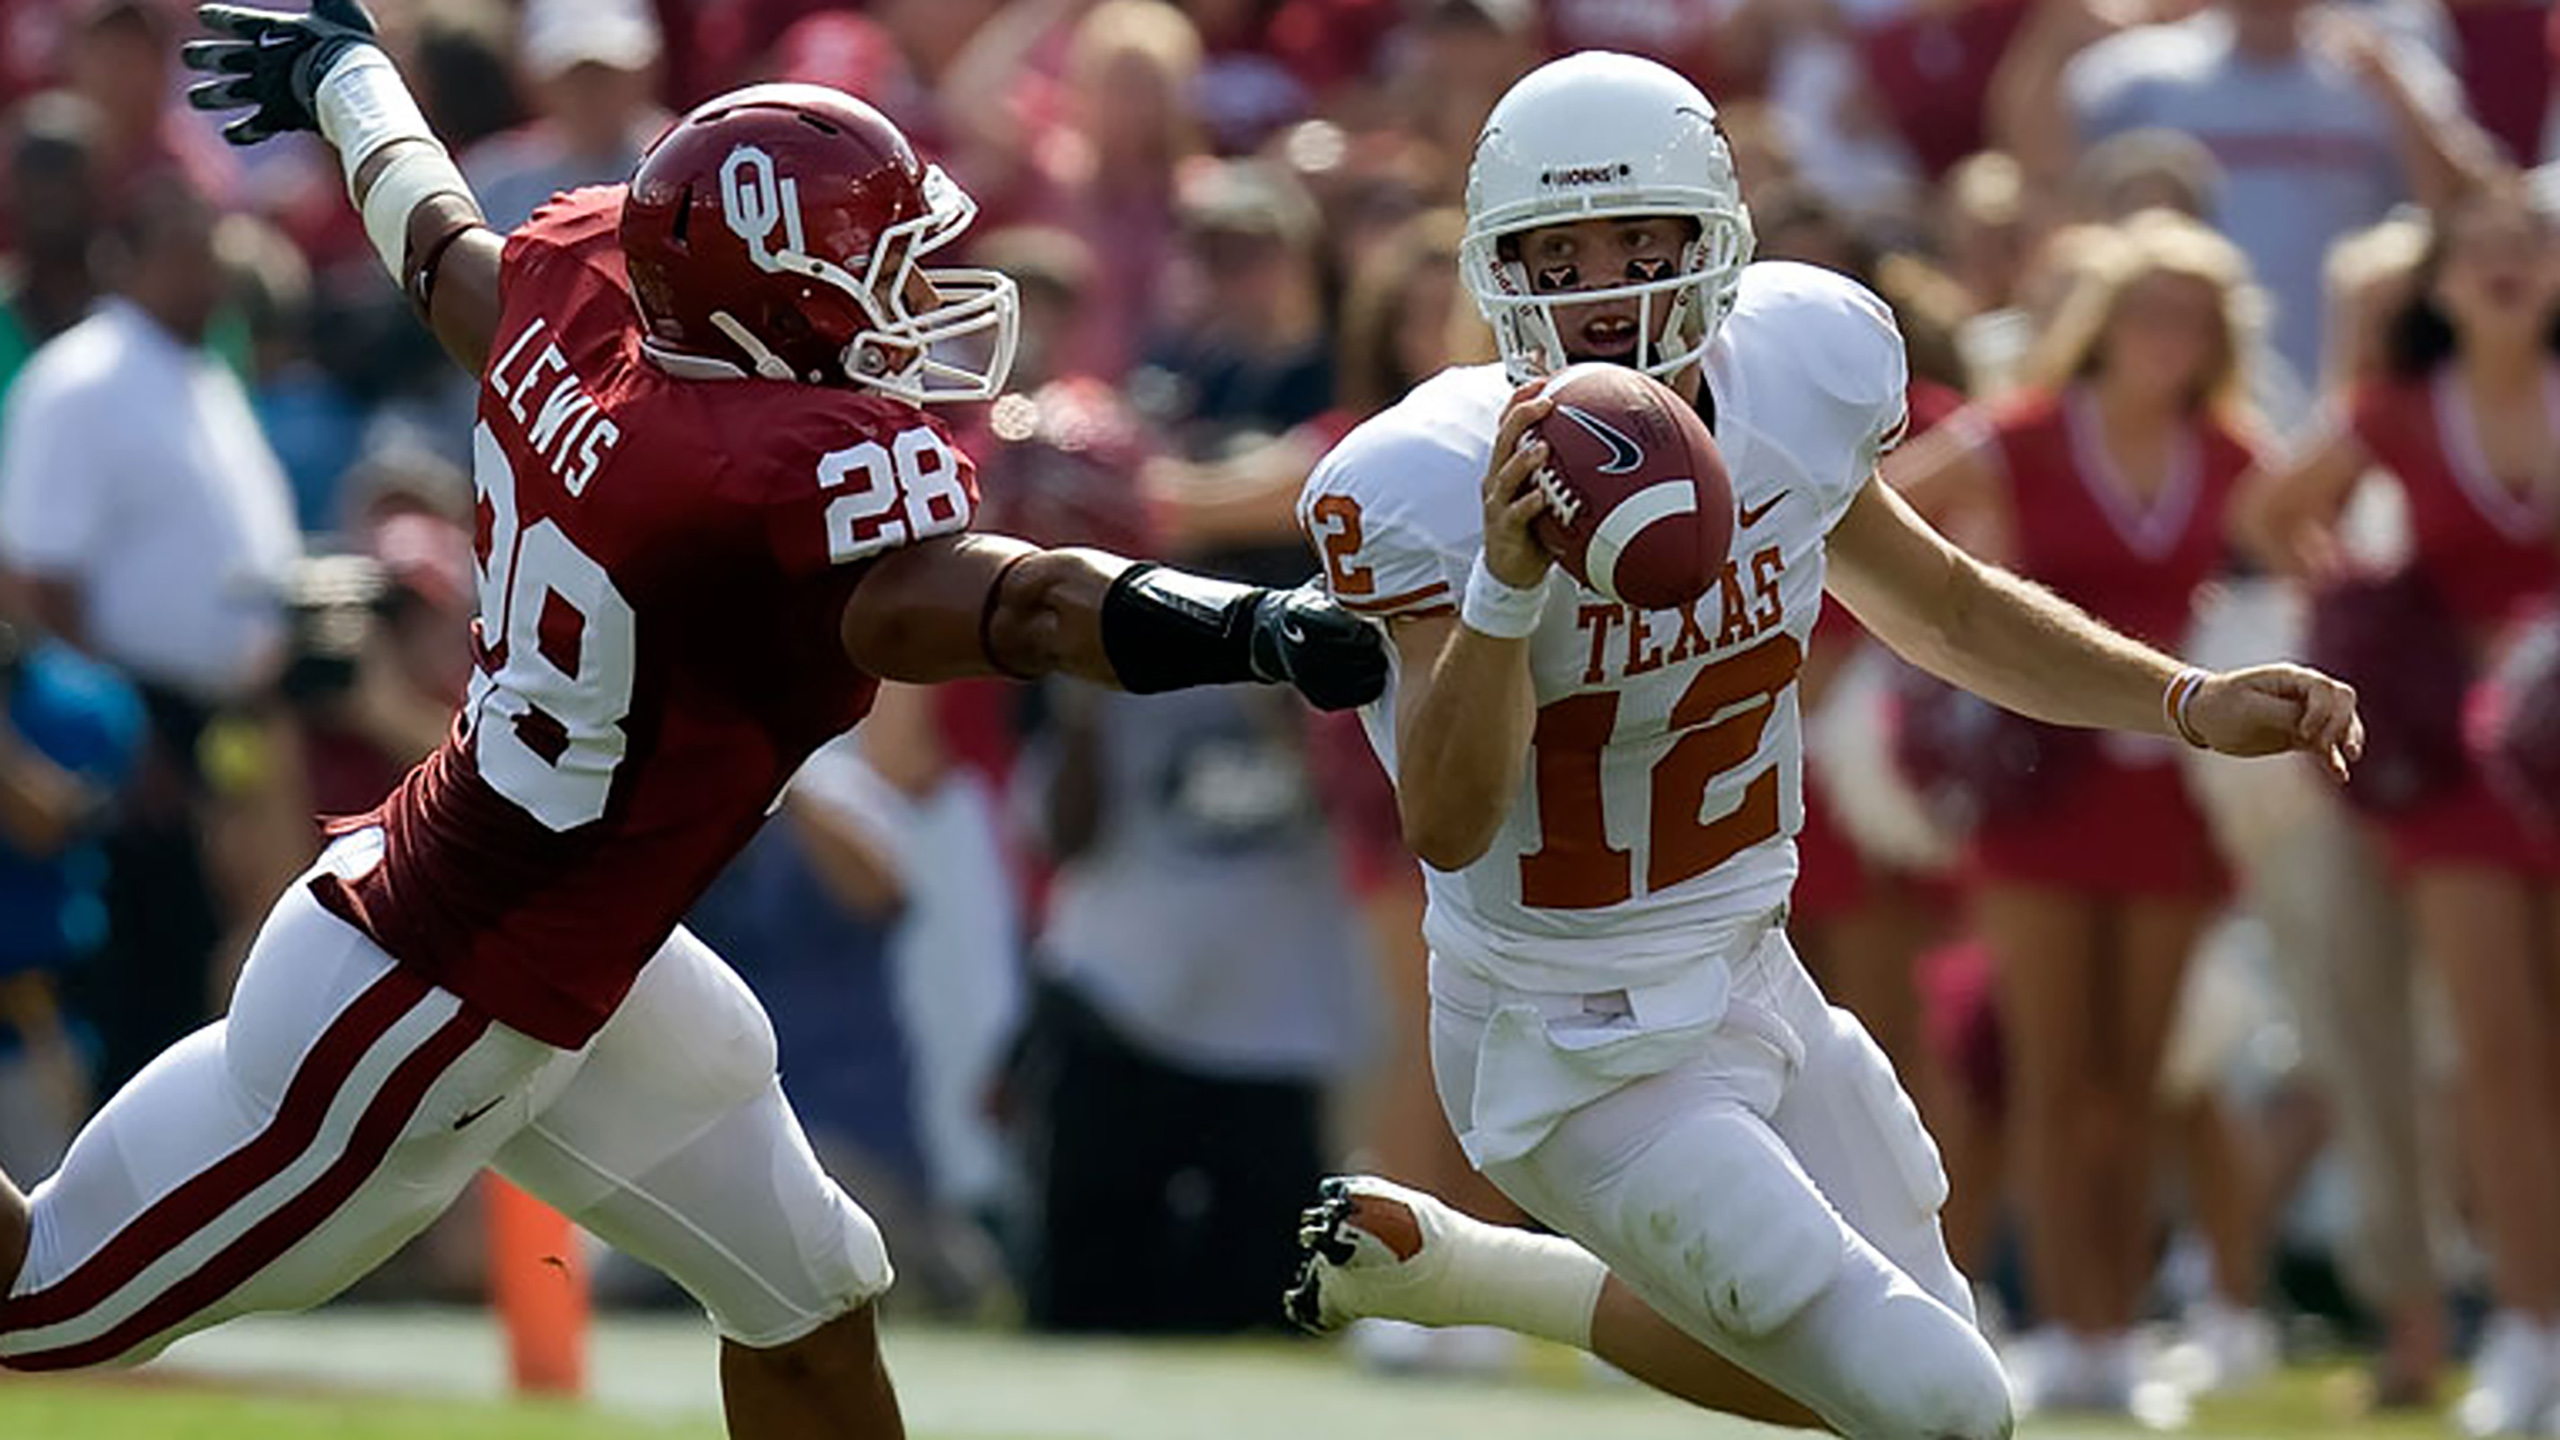 Texas Longhorns vs. #20 Oklahoma Sooners (re-air)